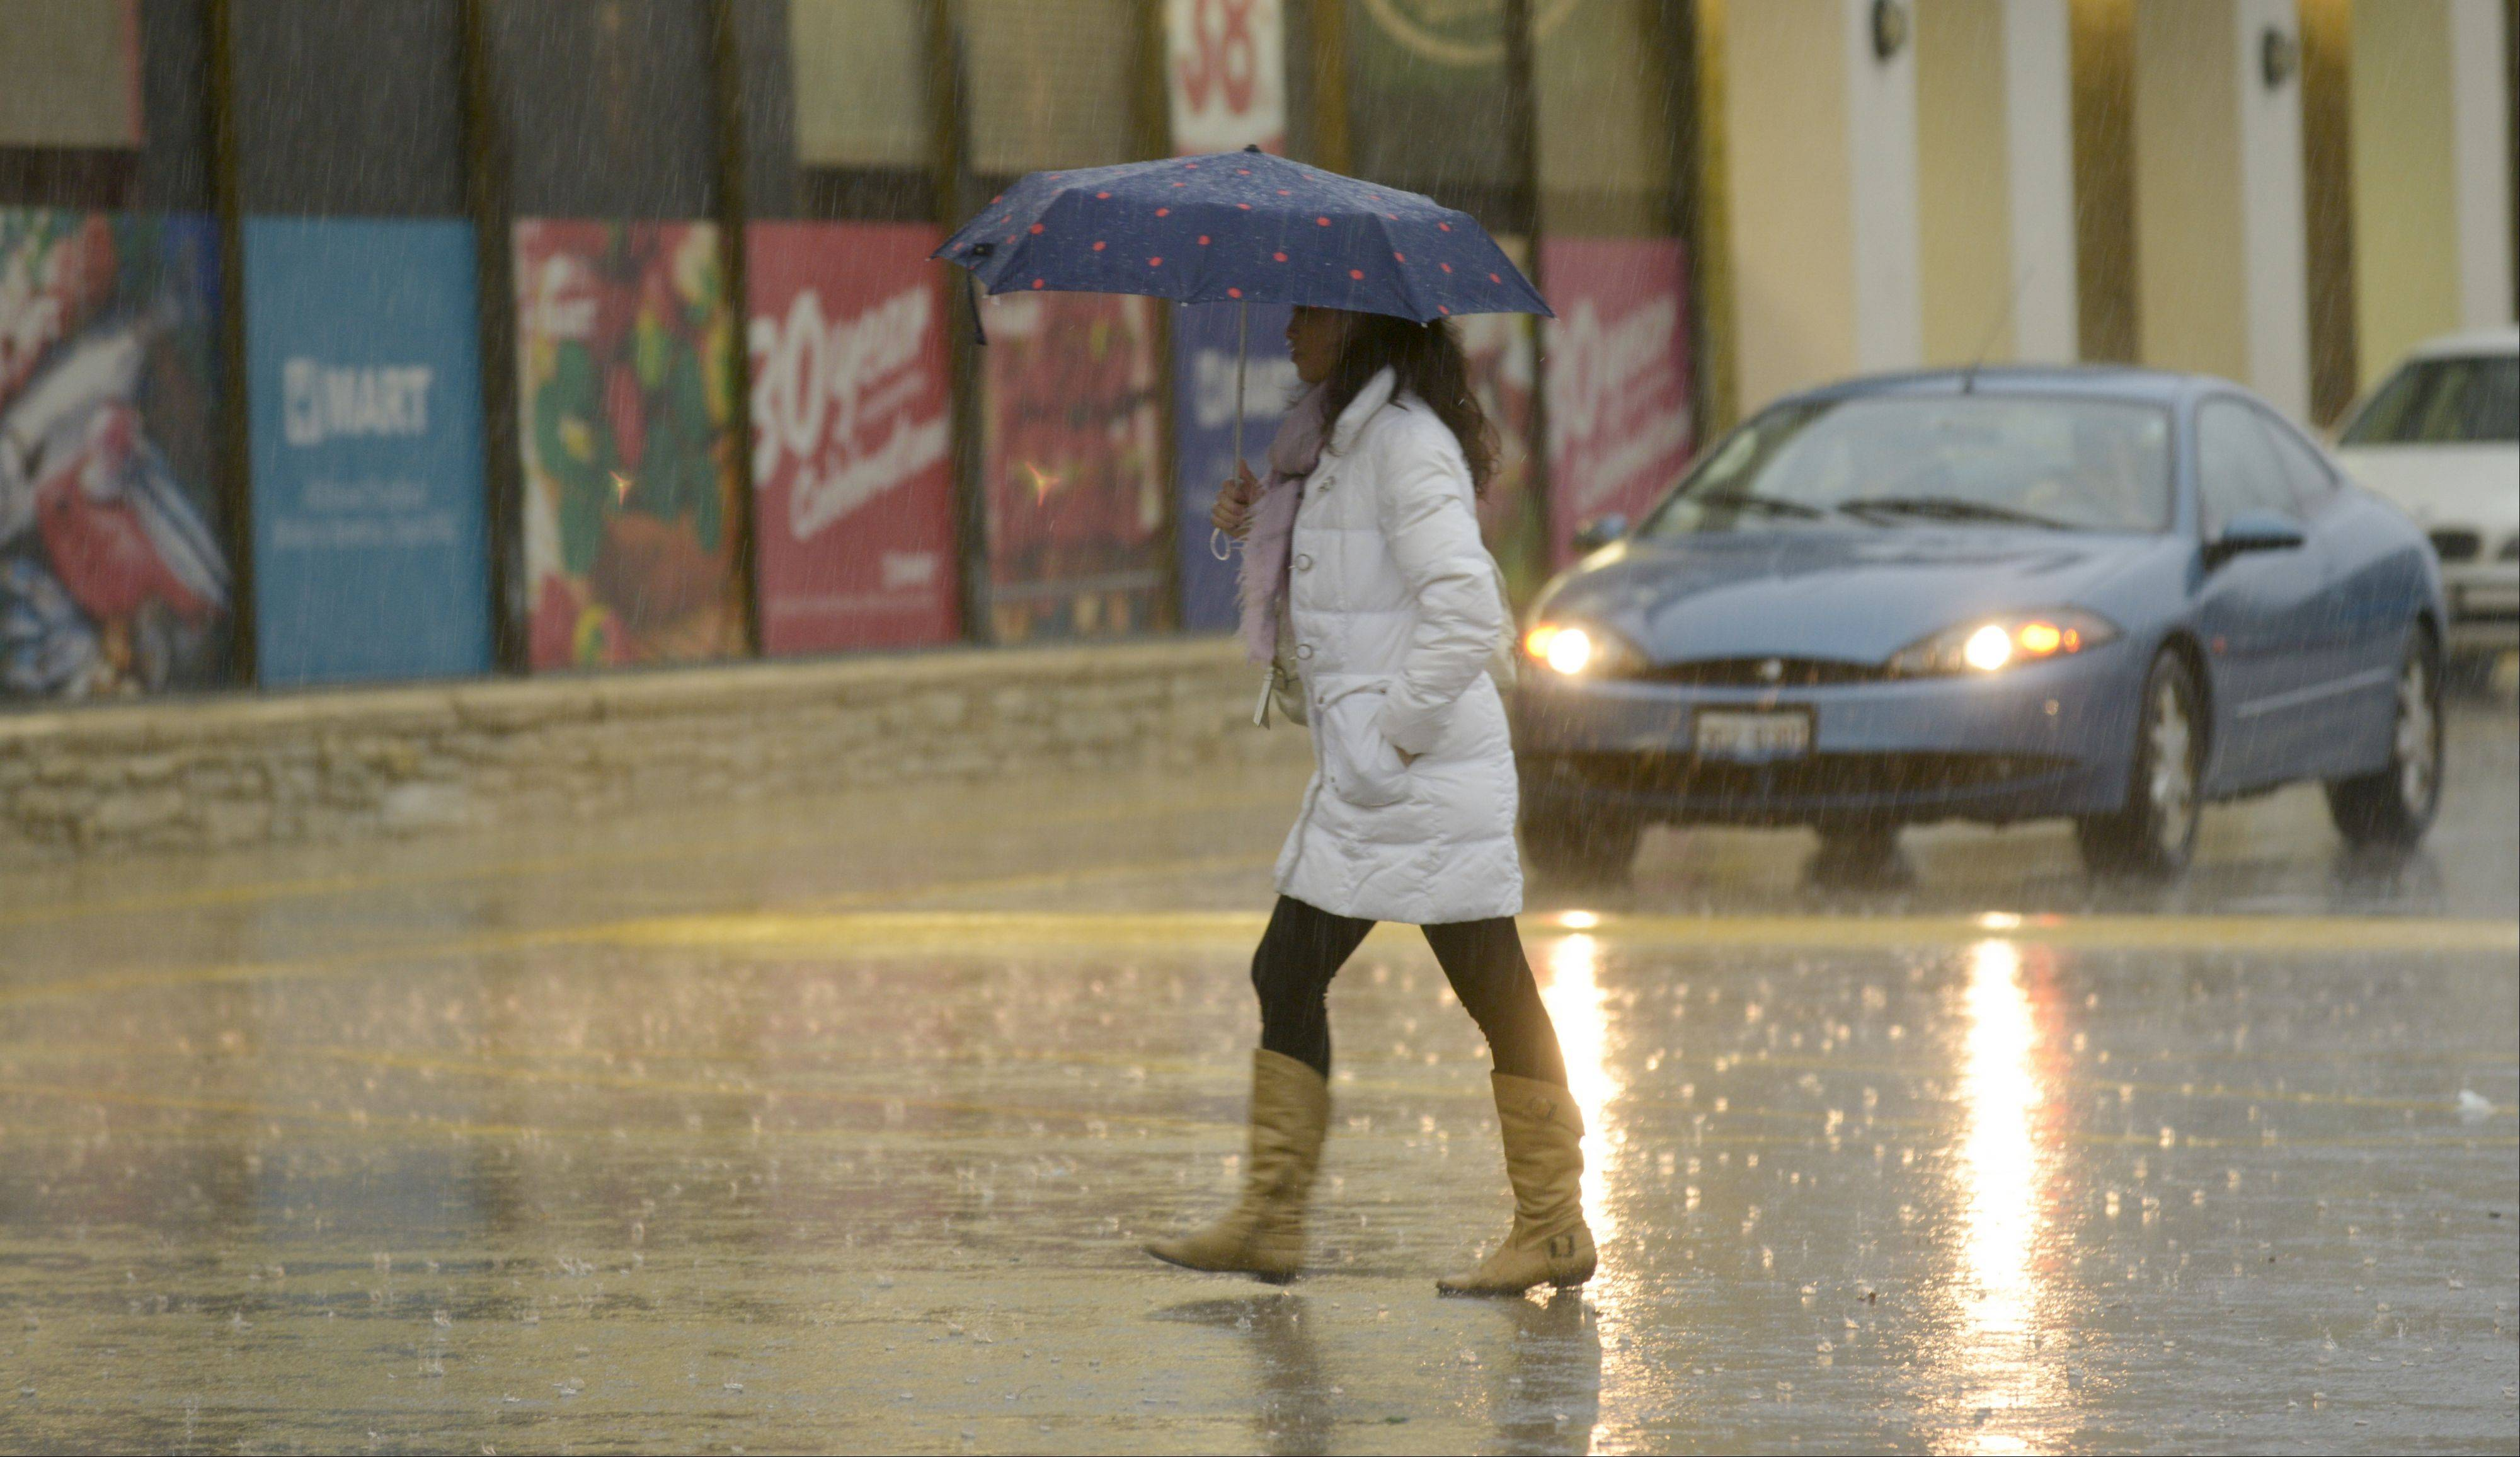 A shopper in Naperville uses an umbrella to keep from the heavy rains, Sunday.